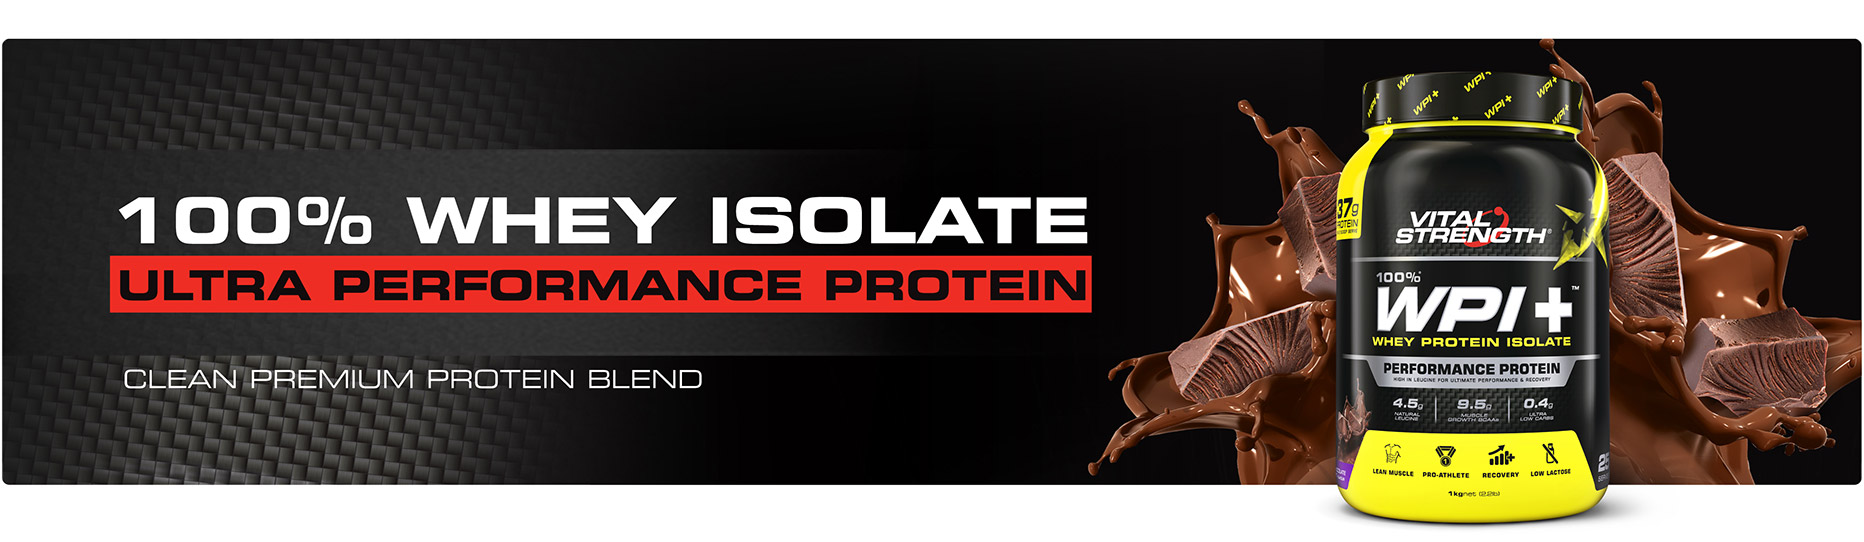 Buy Whey Protein Isolate WPI+